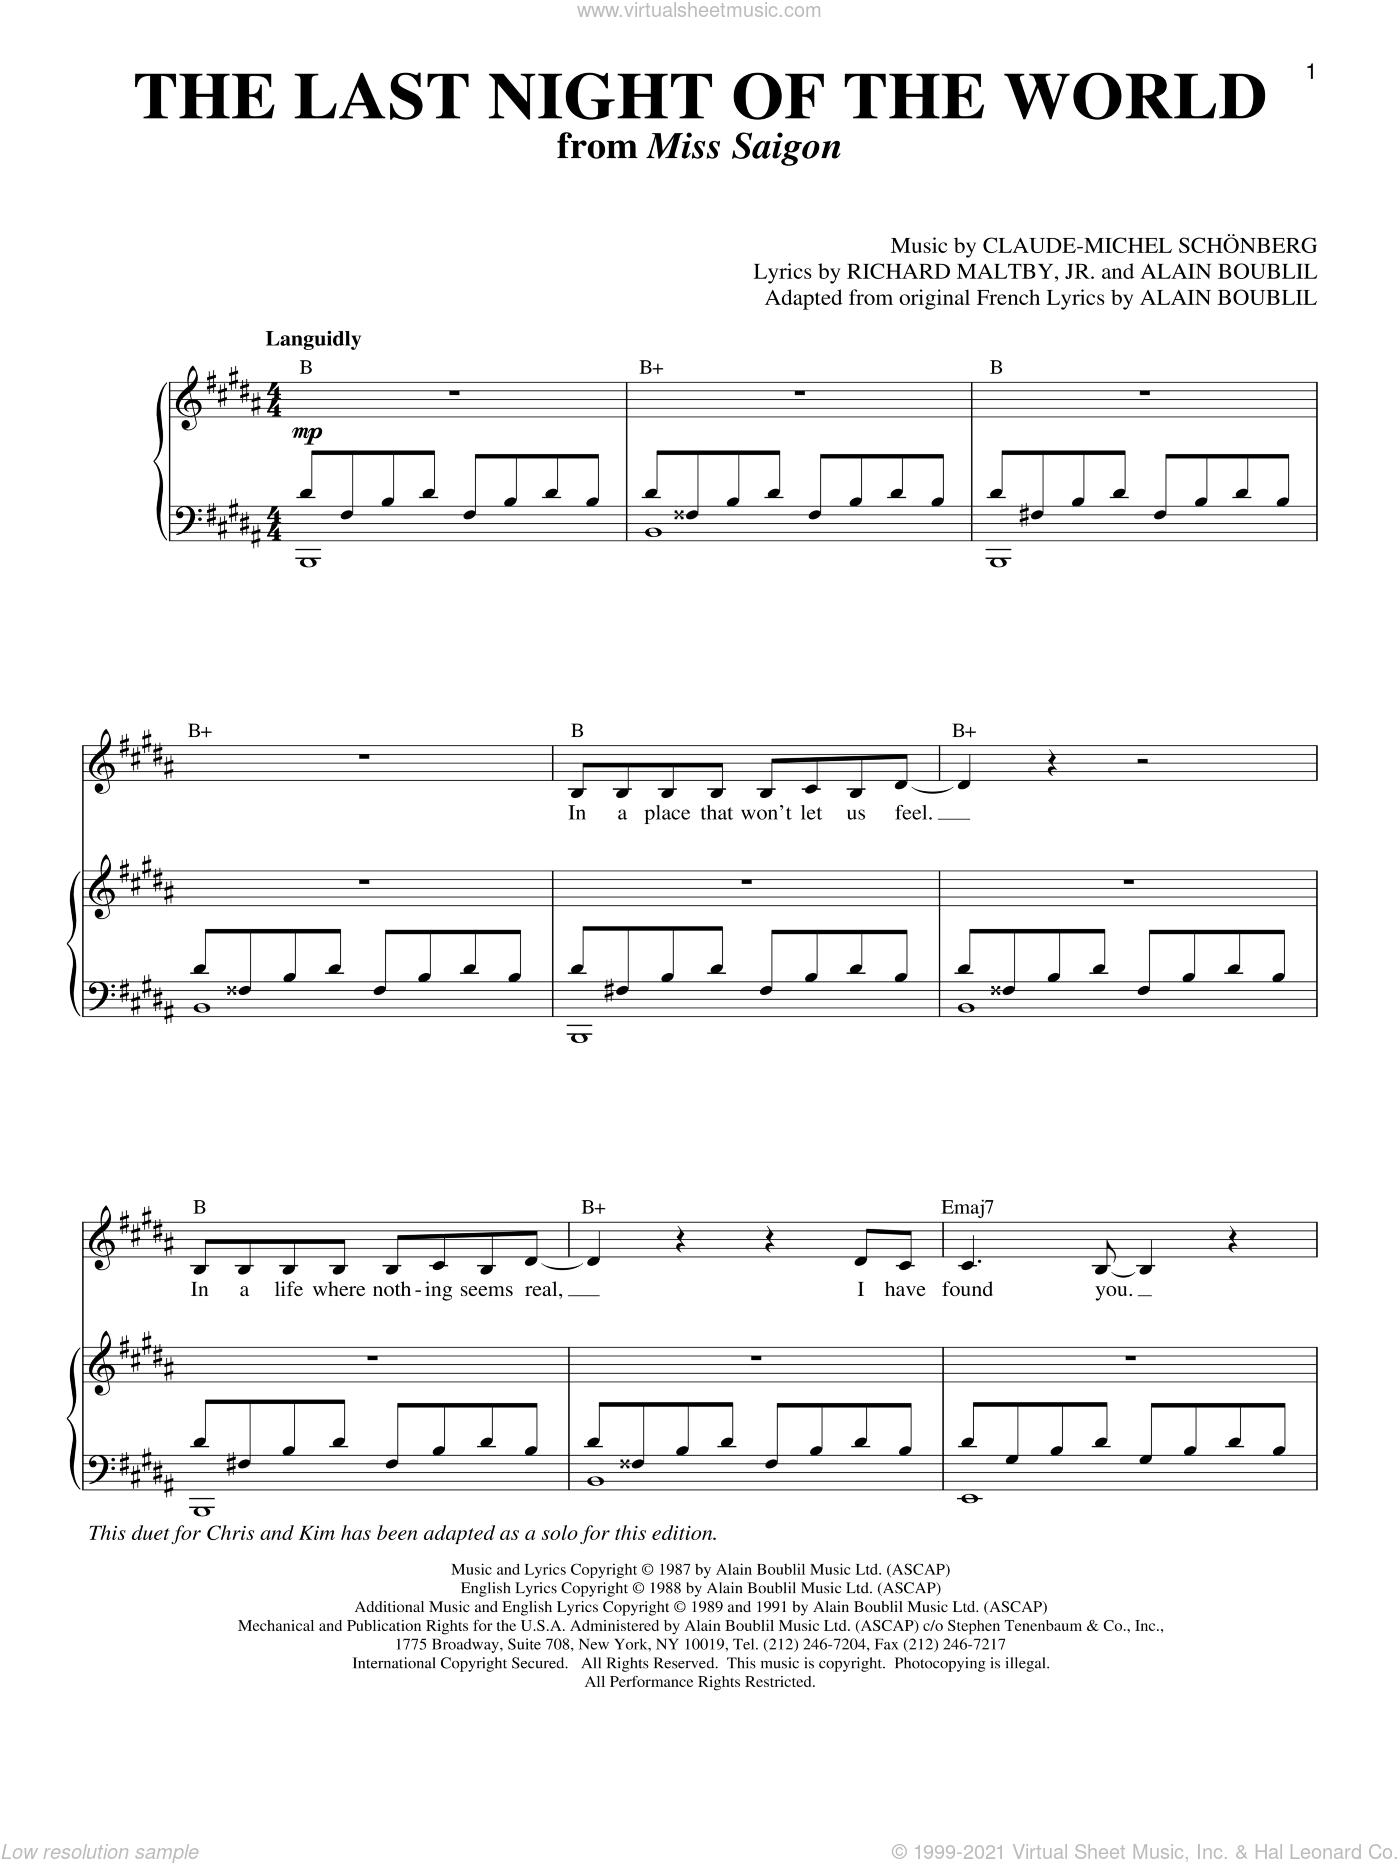 The Last Night Of The World (from Miss Saigon) sheet music for voice and piano by Claude-Michel Schonberg, Miss Saigon (Musical), Alain Boublil, Michel LeGrand and Richard Maltby, Jr., intermediate skill level